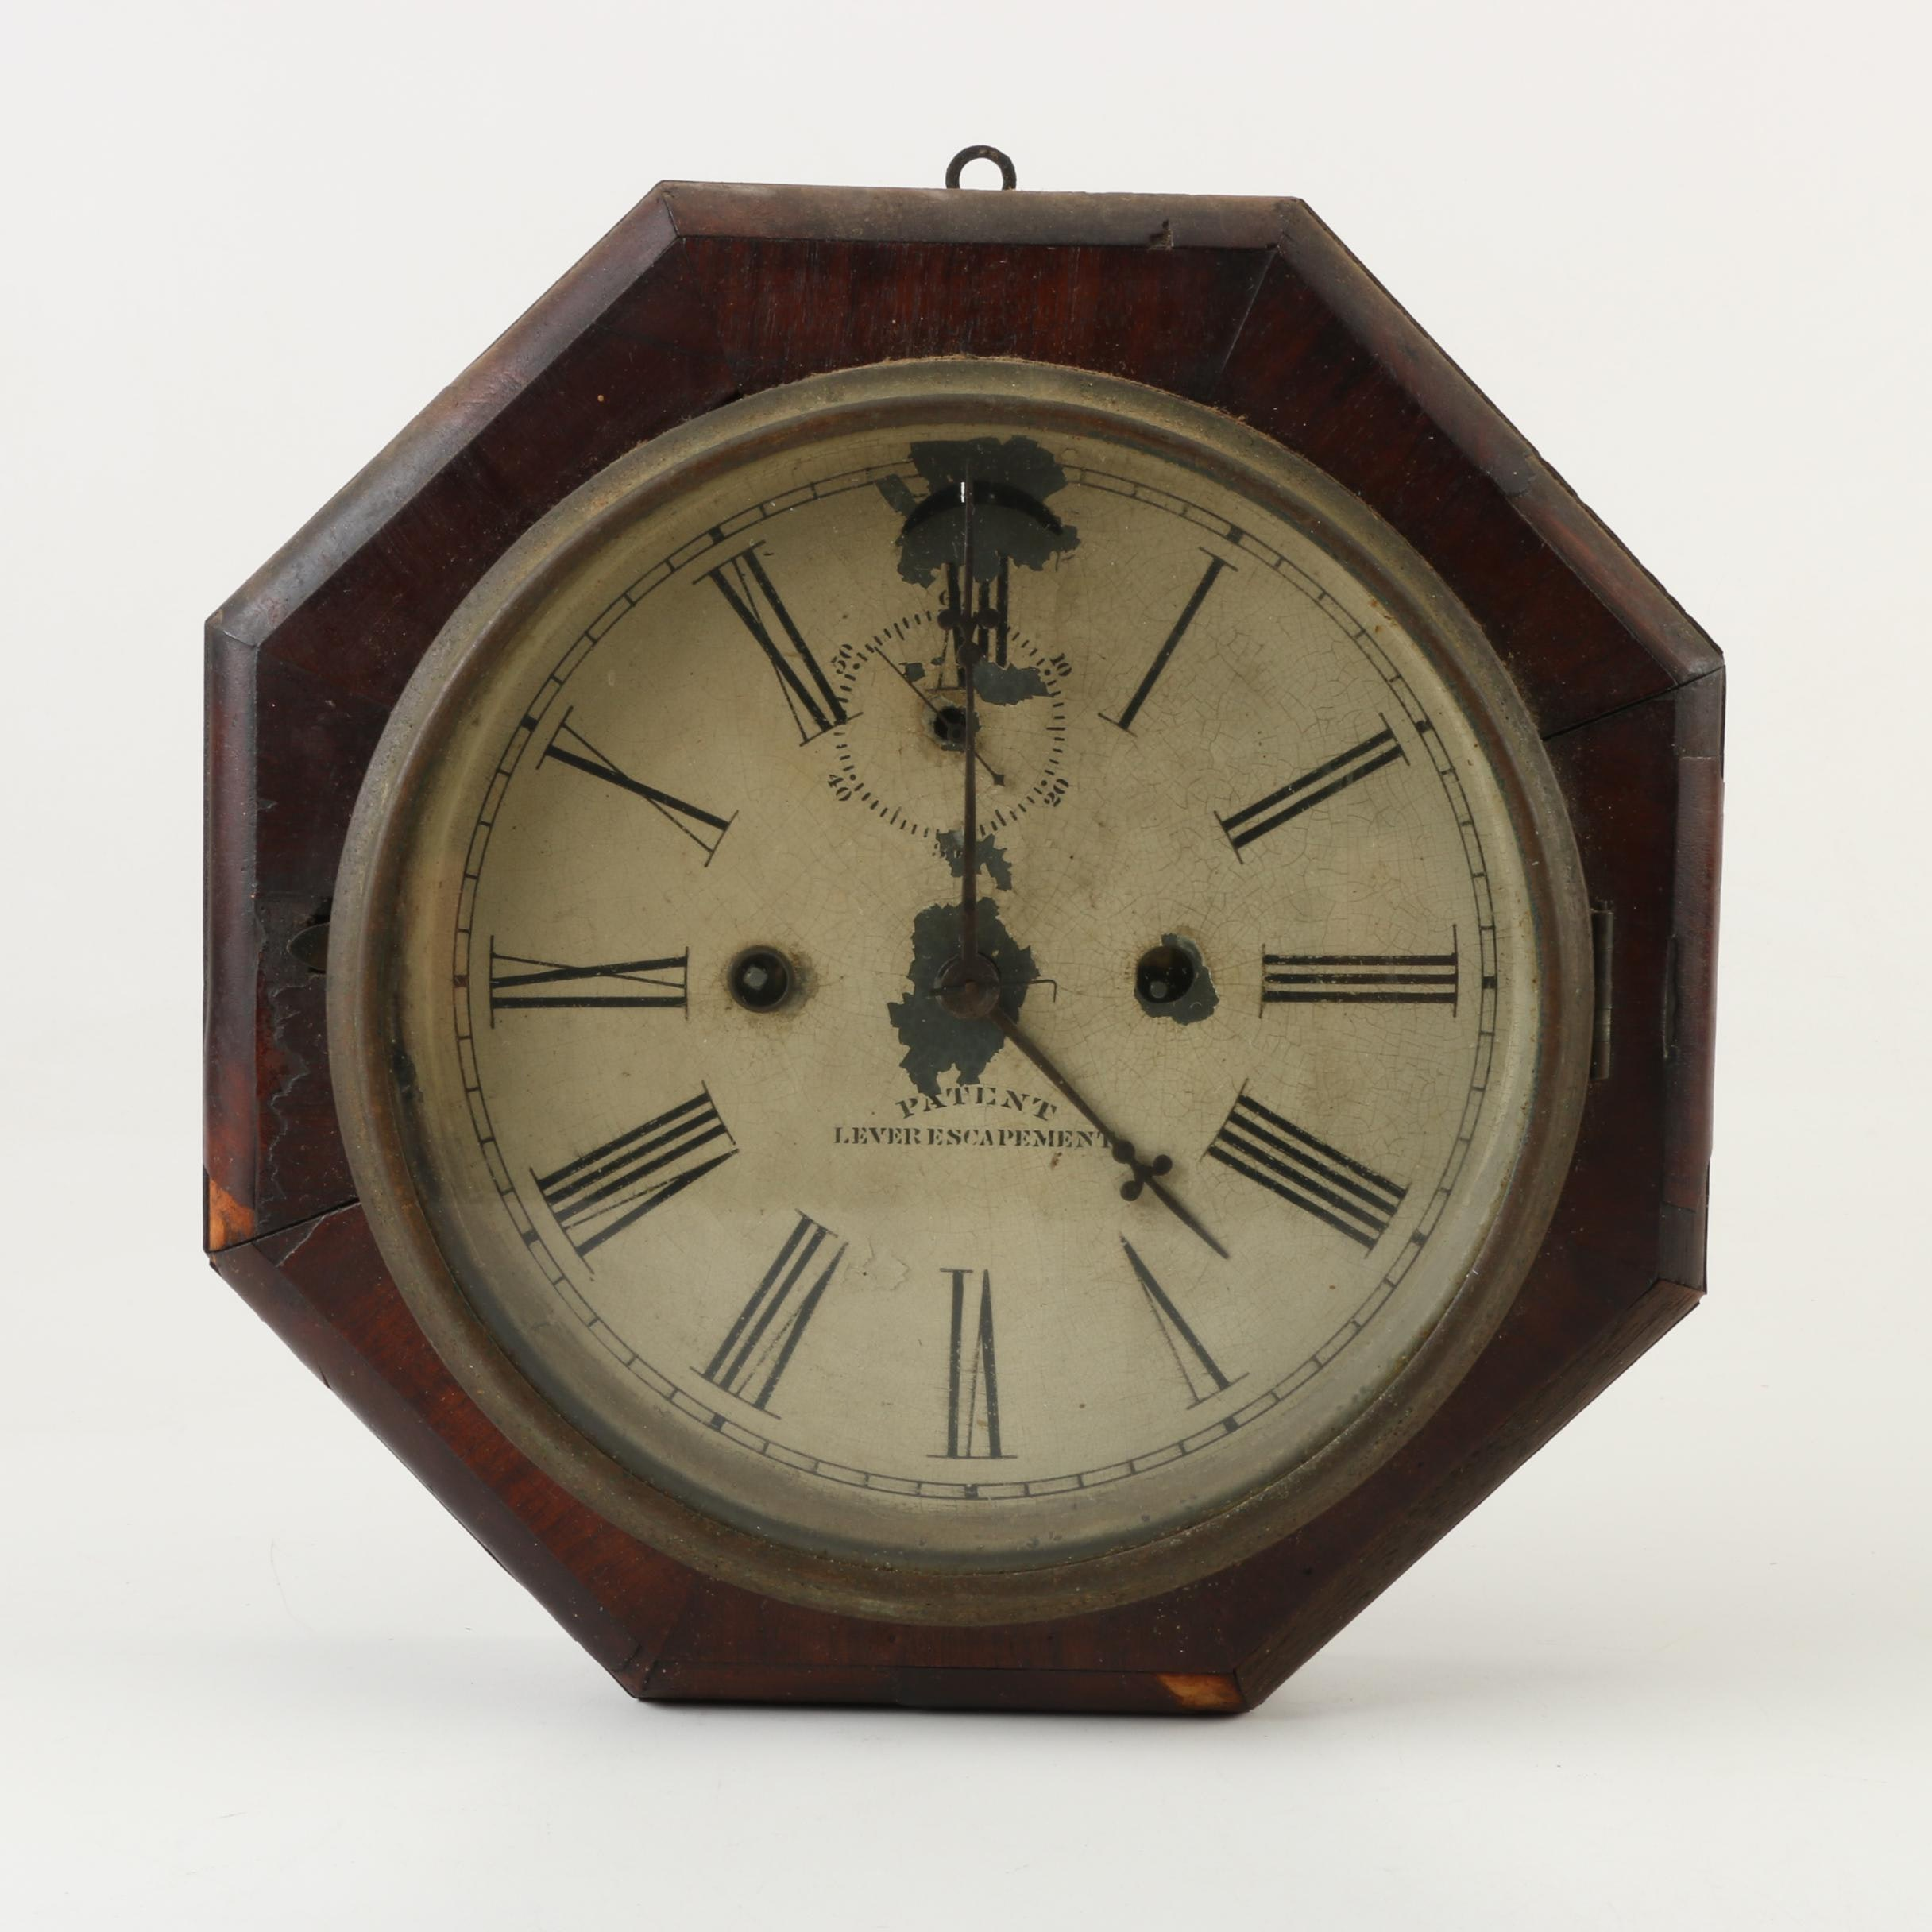 Antique Mahogany Veneer Waterbury Lever Escapement Wall Clock